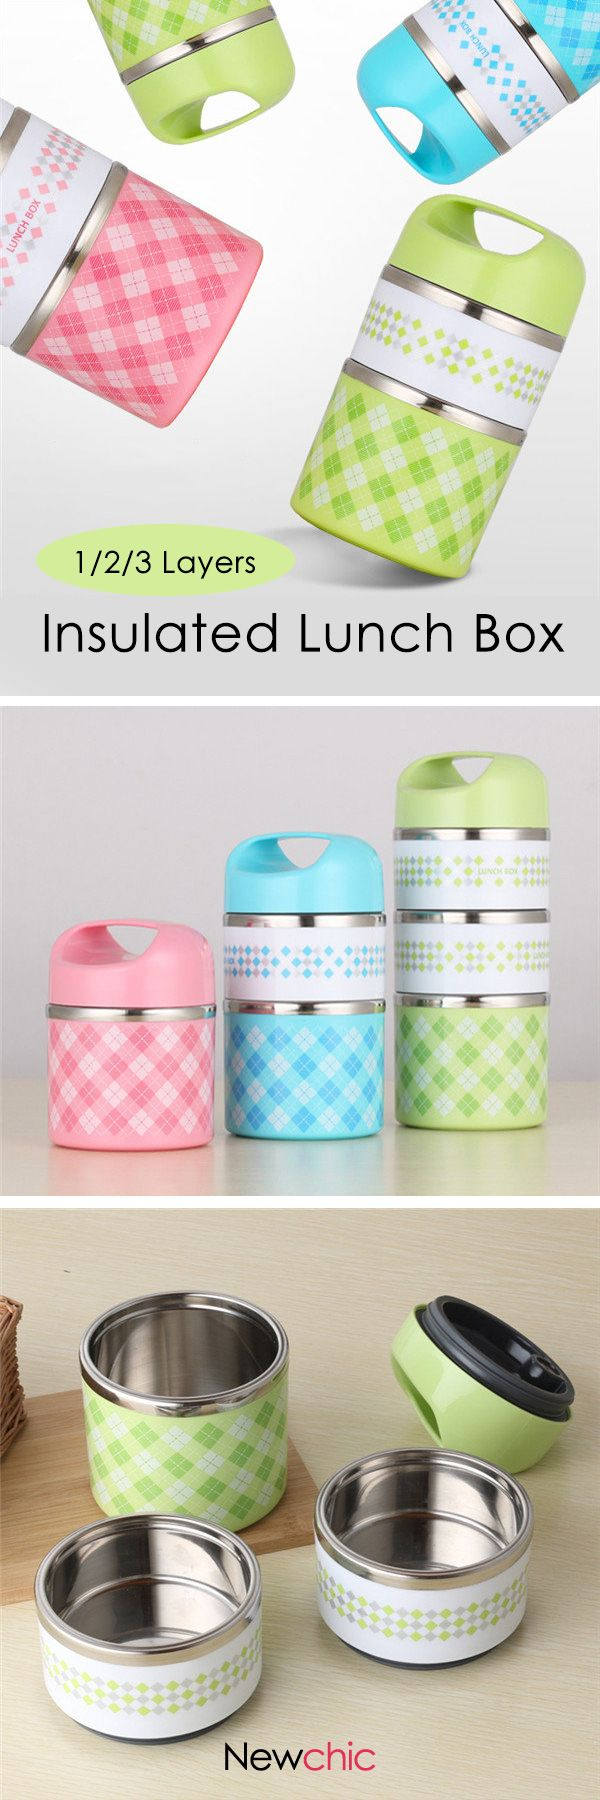 US$9.95--1/2/3 Layers Stainless Steel Thermal Insulated Lunch Box Bento Food Storage Container Lunch Box#newchic#student#stationary